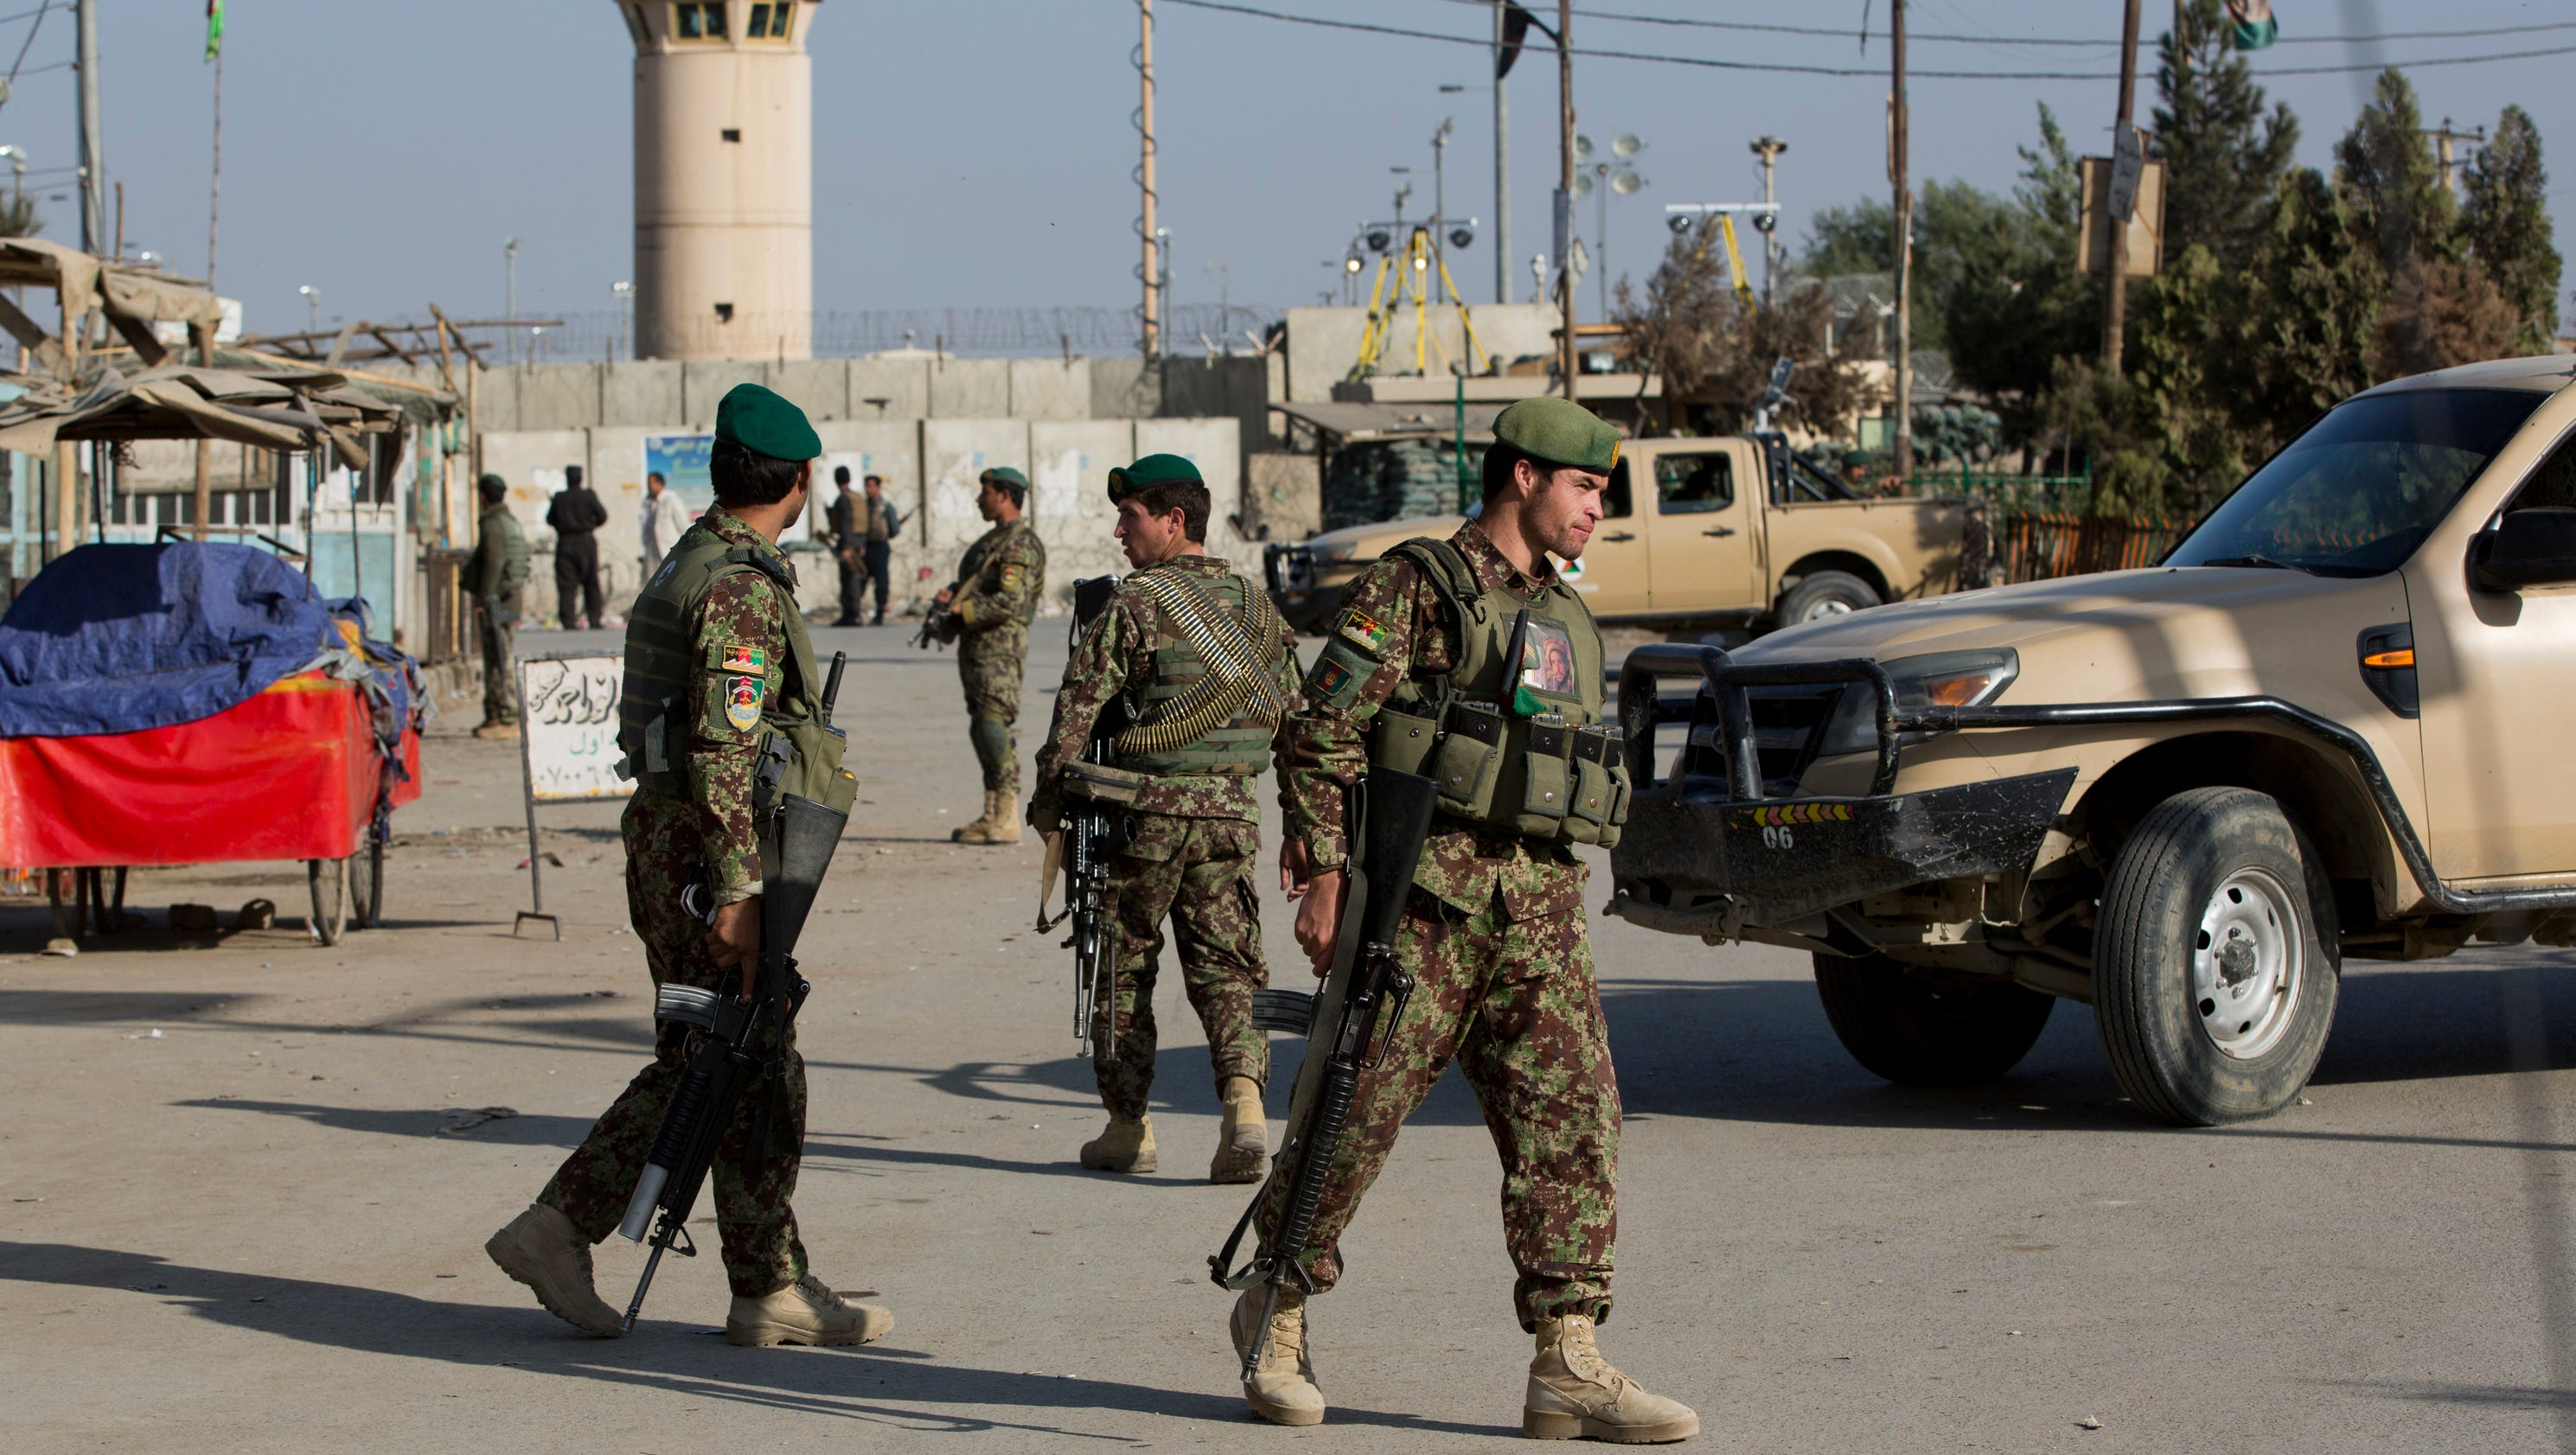 Embassy in afghanistan closed after suicide bombing on military